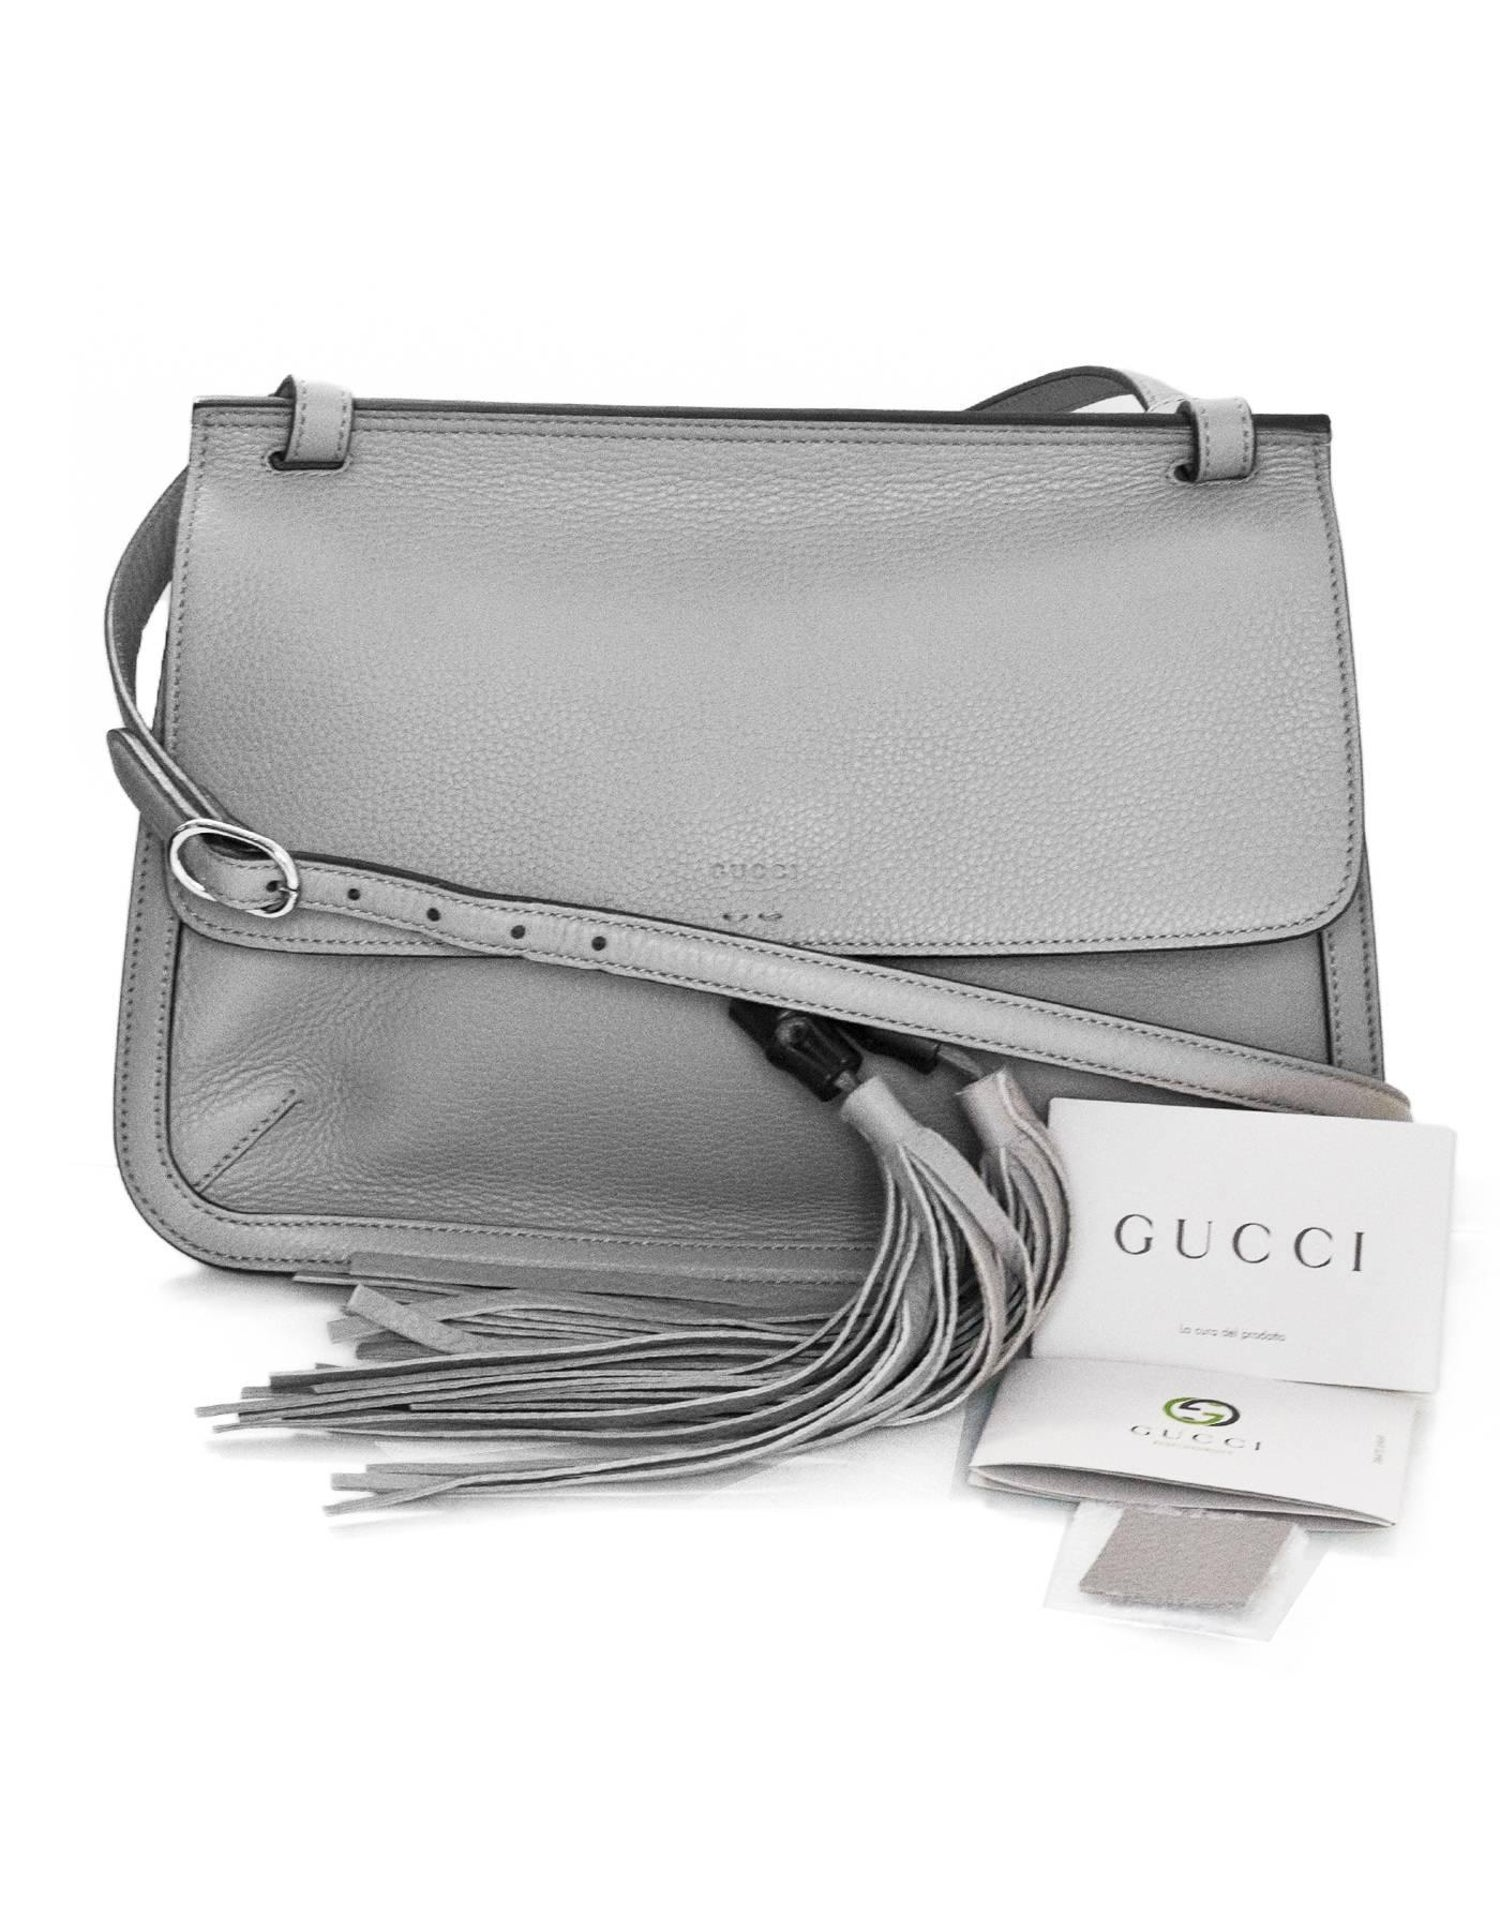 f02bb7839 Gucci Light Grey Handbag